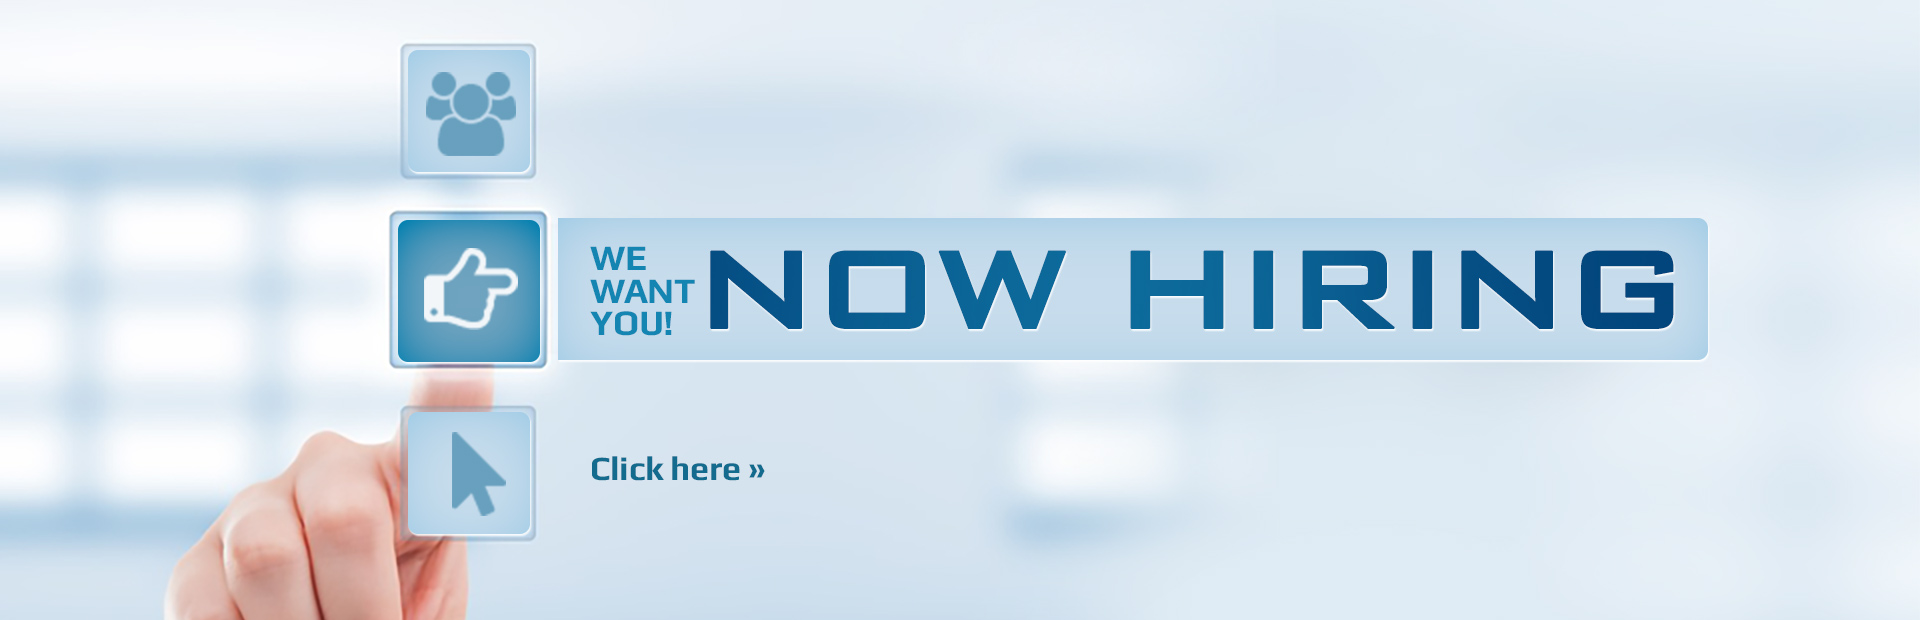 We are now hiring! Click here to contact us for details.